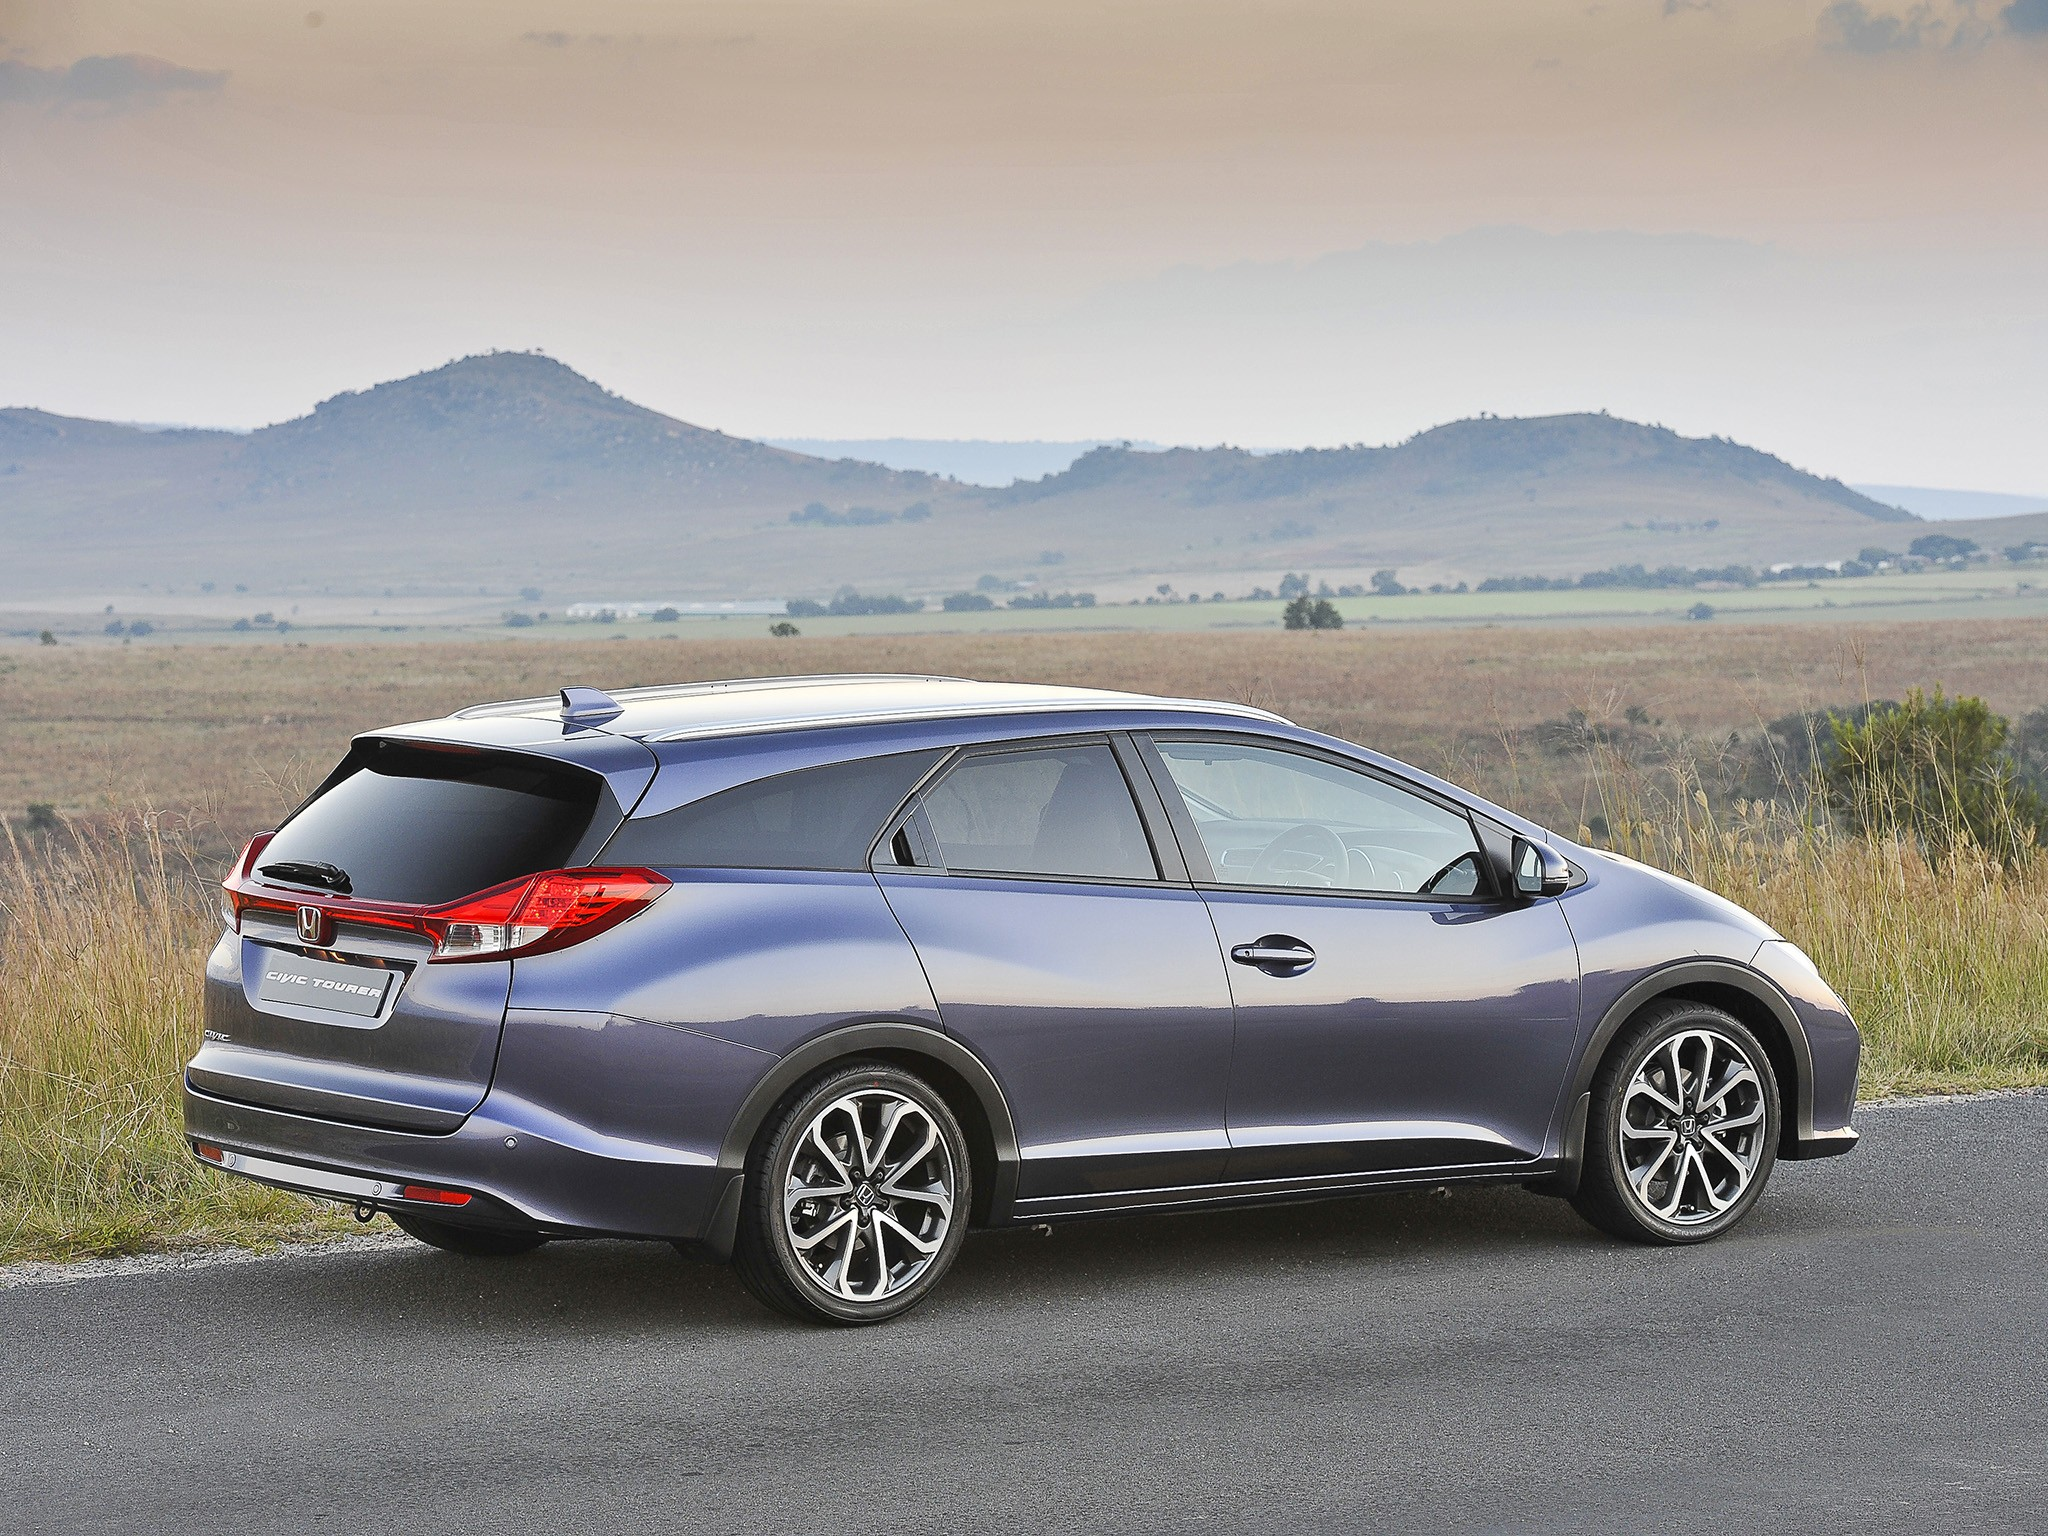 2017 Honda Civic Gas Mileage >> HONDA Civic Tourer specs & photos - 2013, 2014, 2015, 2016, 2017, 2018 - autoevolution